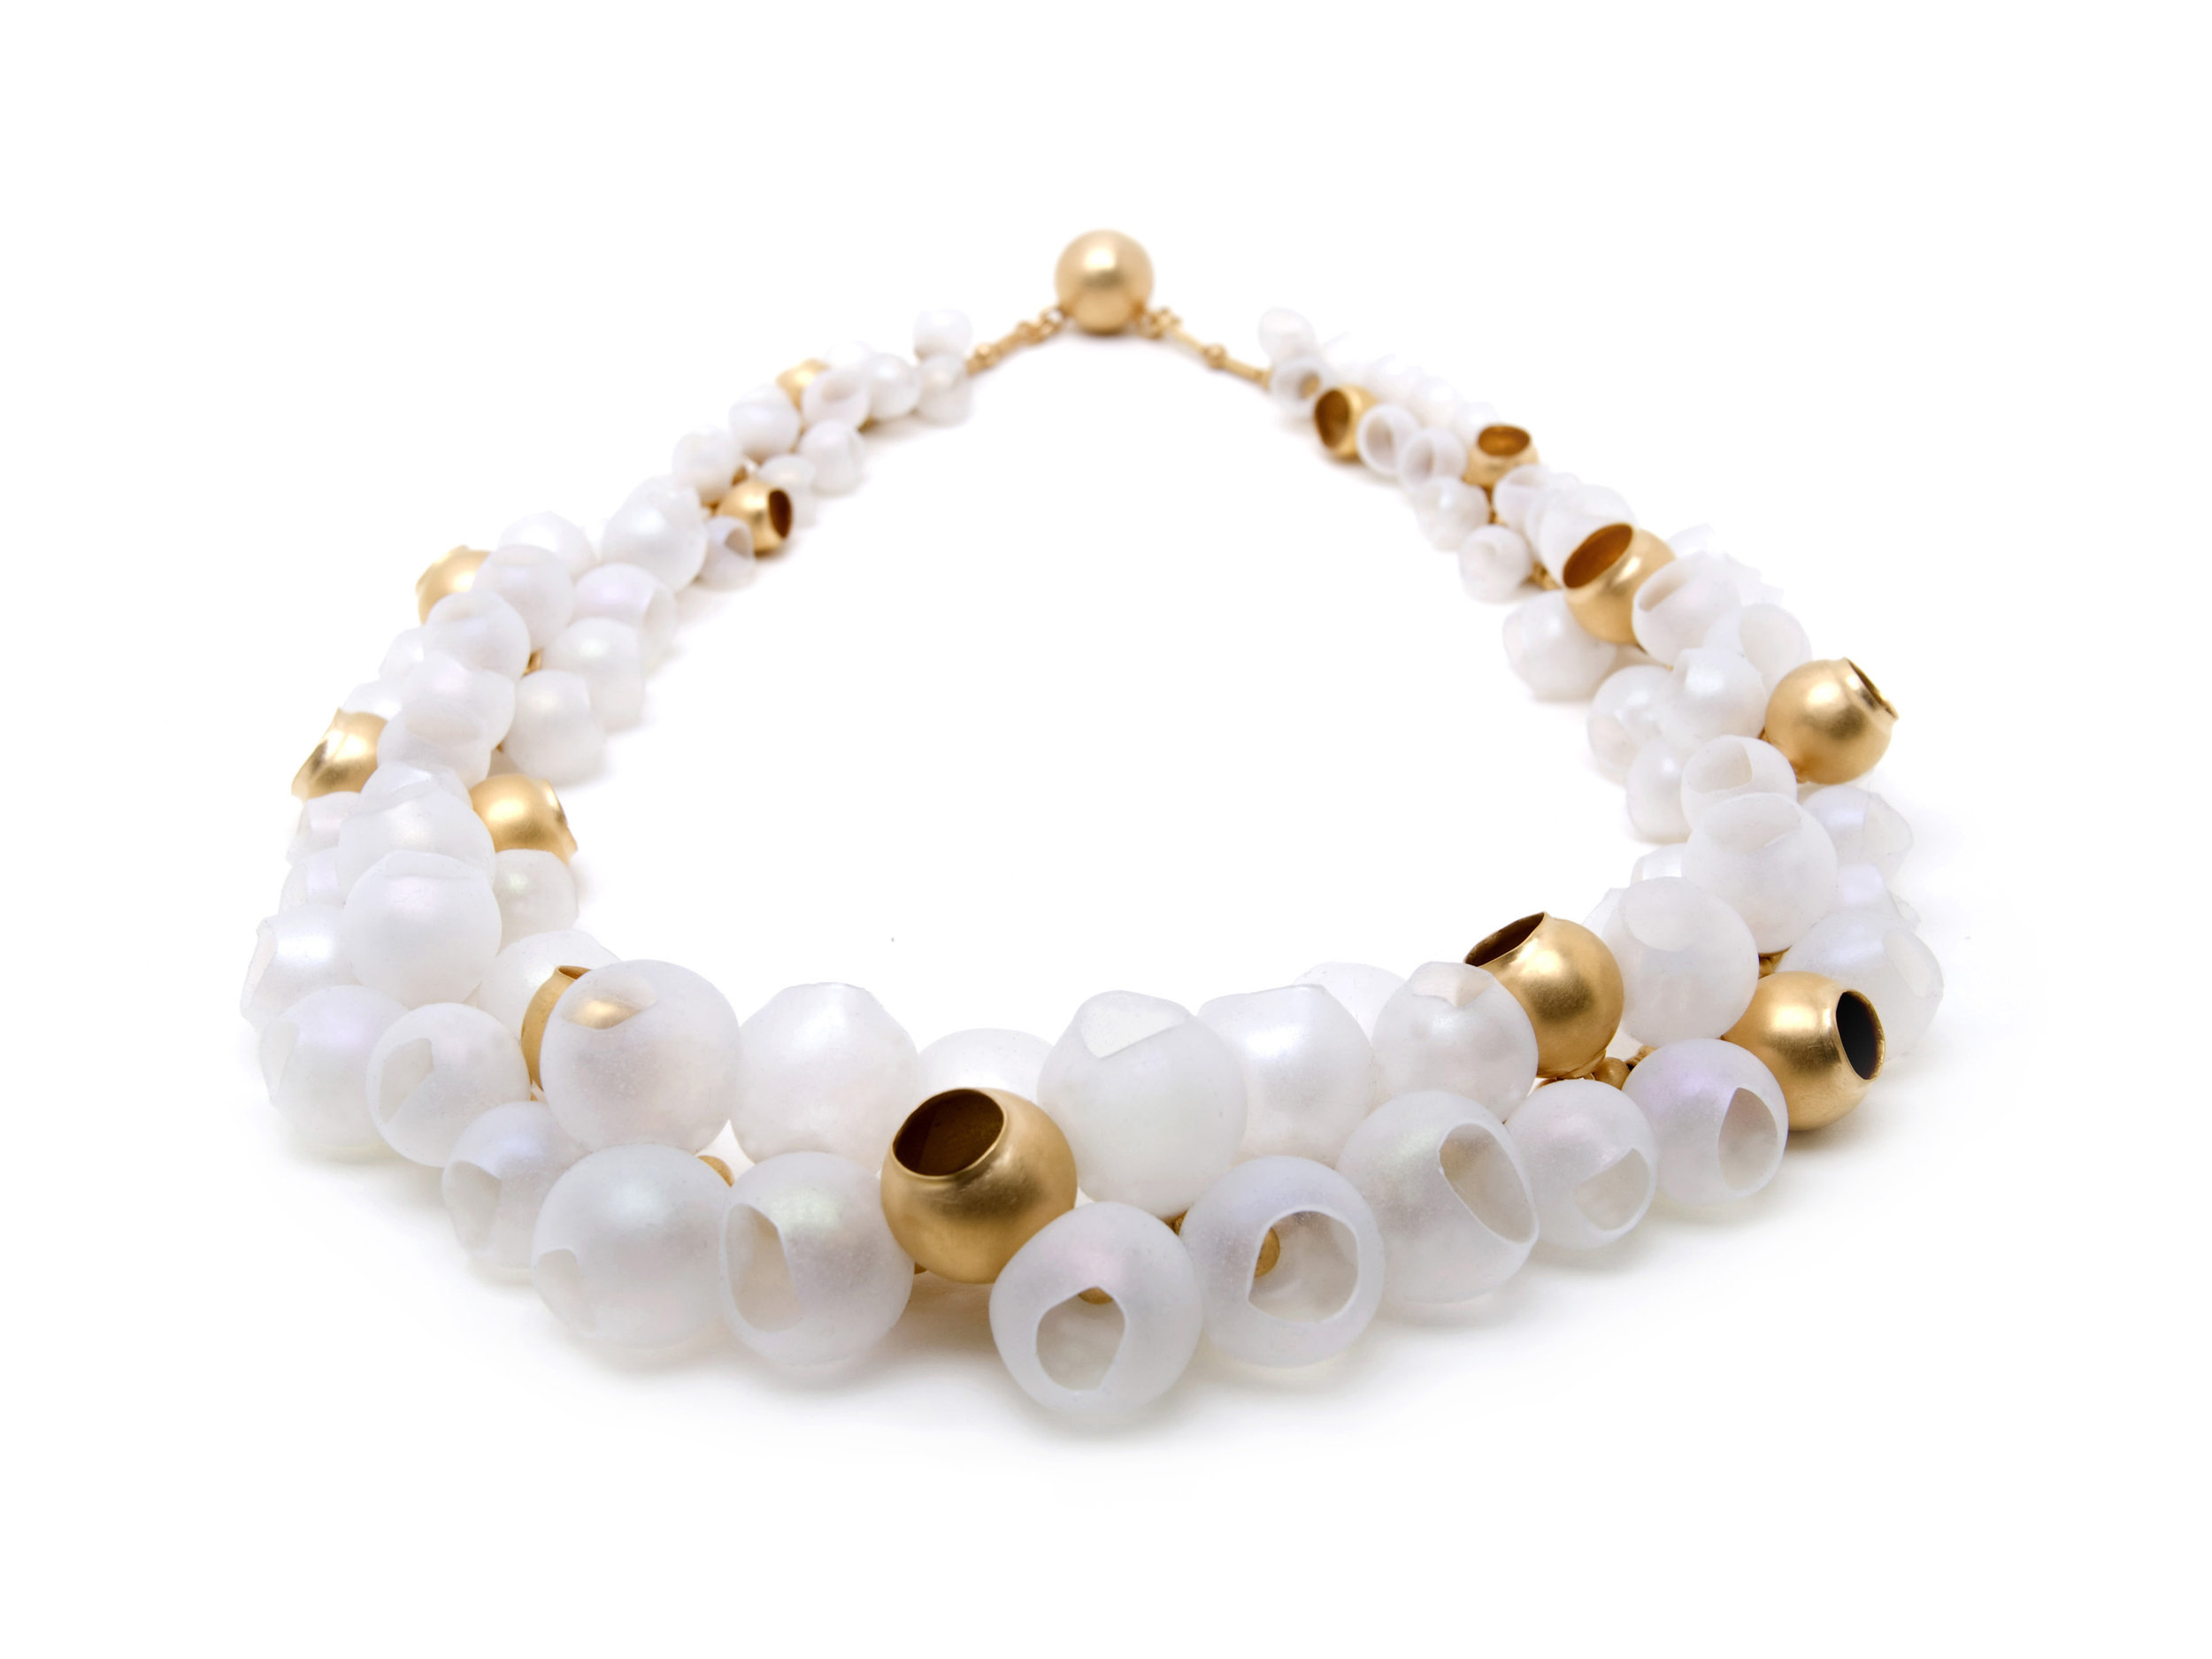 15 Jenny Llewellyn Who Needs Pearls necklace- 300.jpg